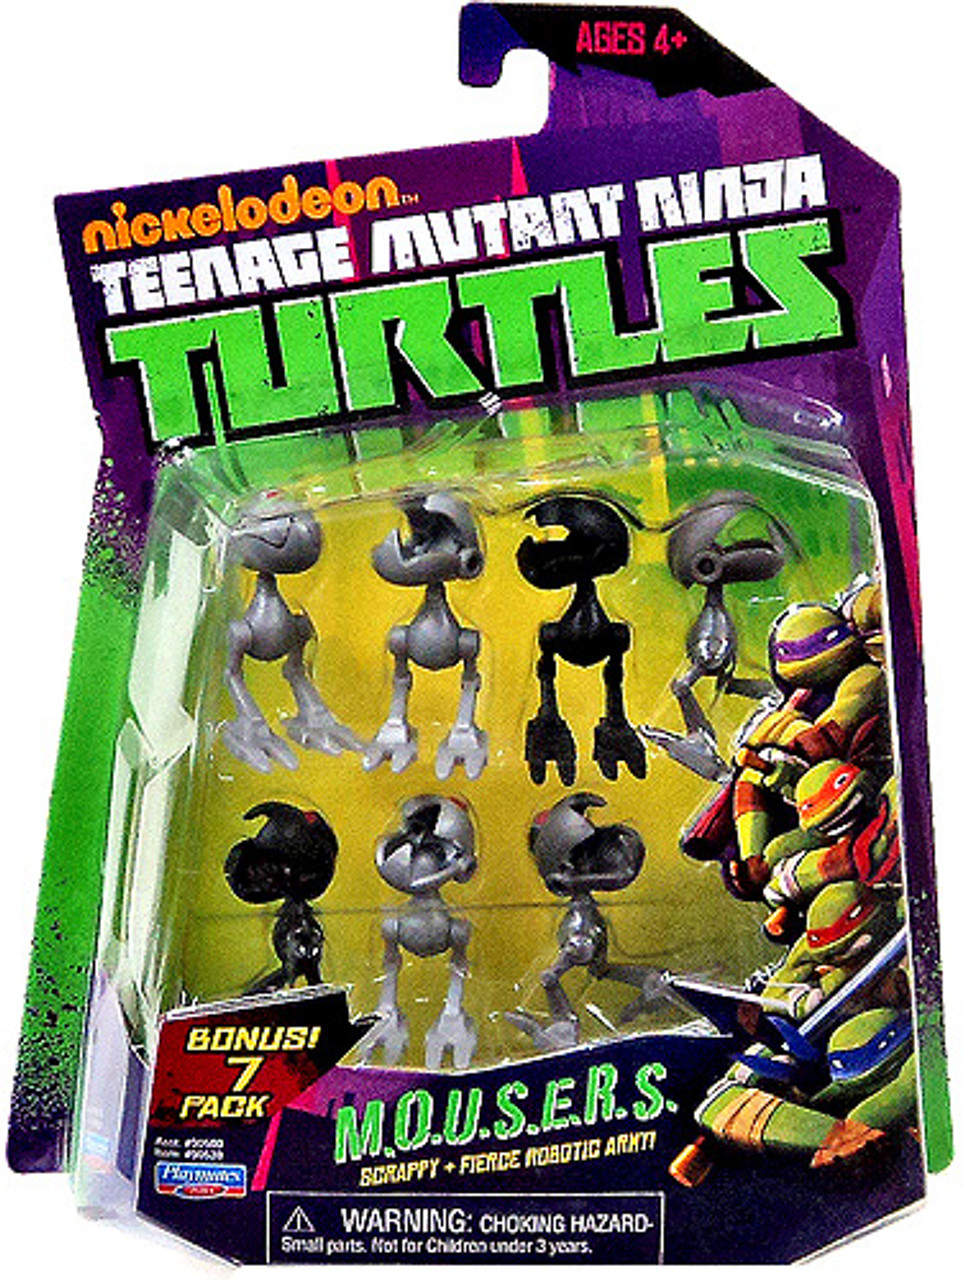 Teenage Mutant Ninja Turtles Nickelodeon MOUSERS Action Figure Set